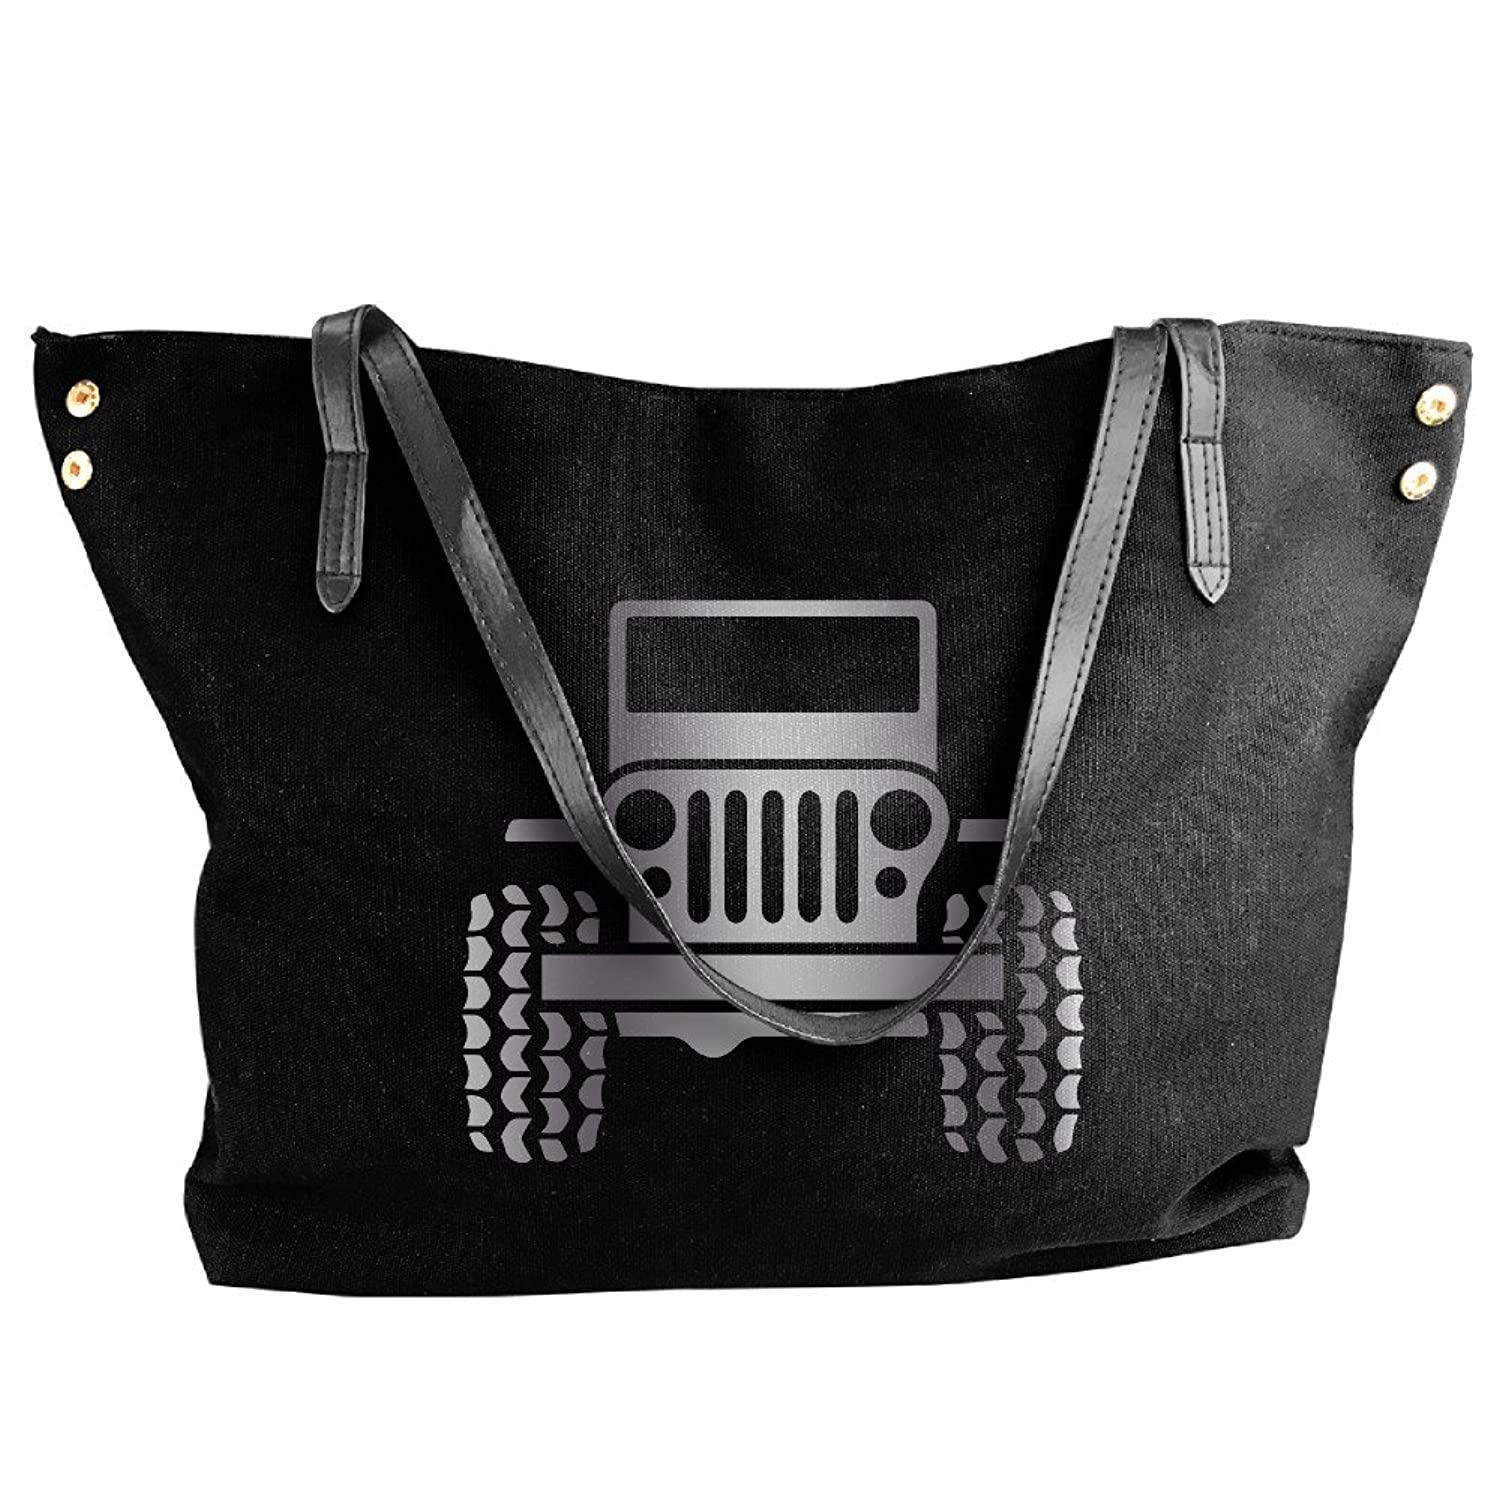 Jeep Wrangler Platinum Style Canvas Top Handle Handbags For Women